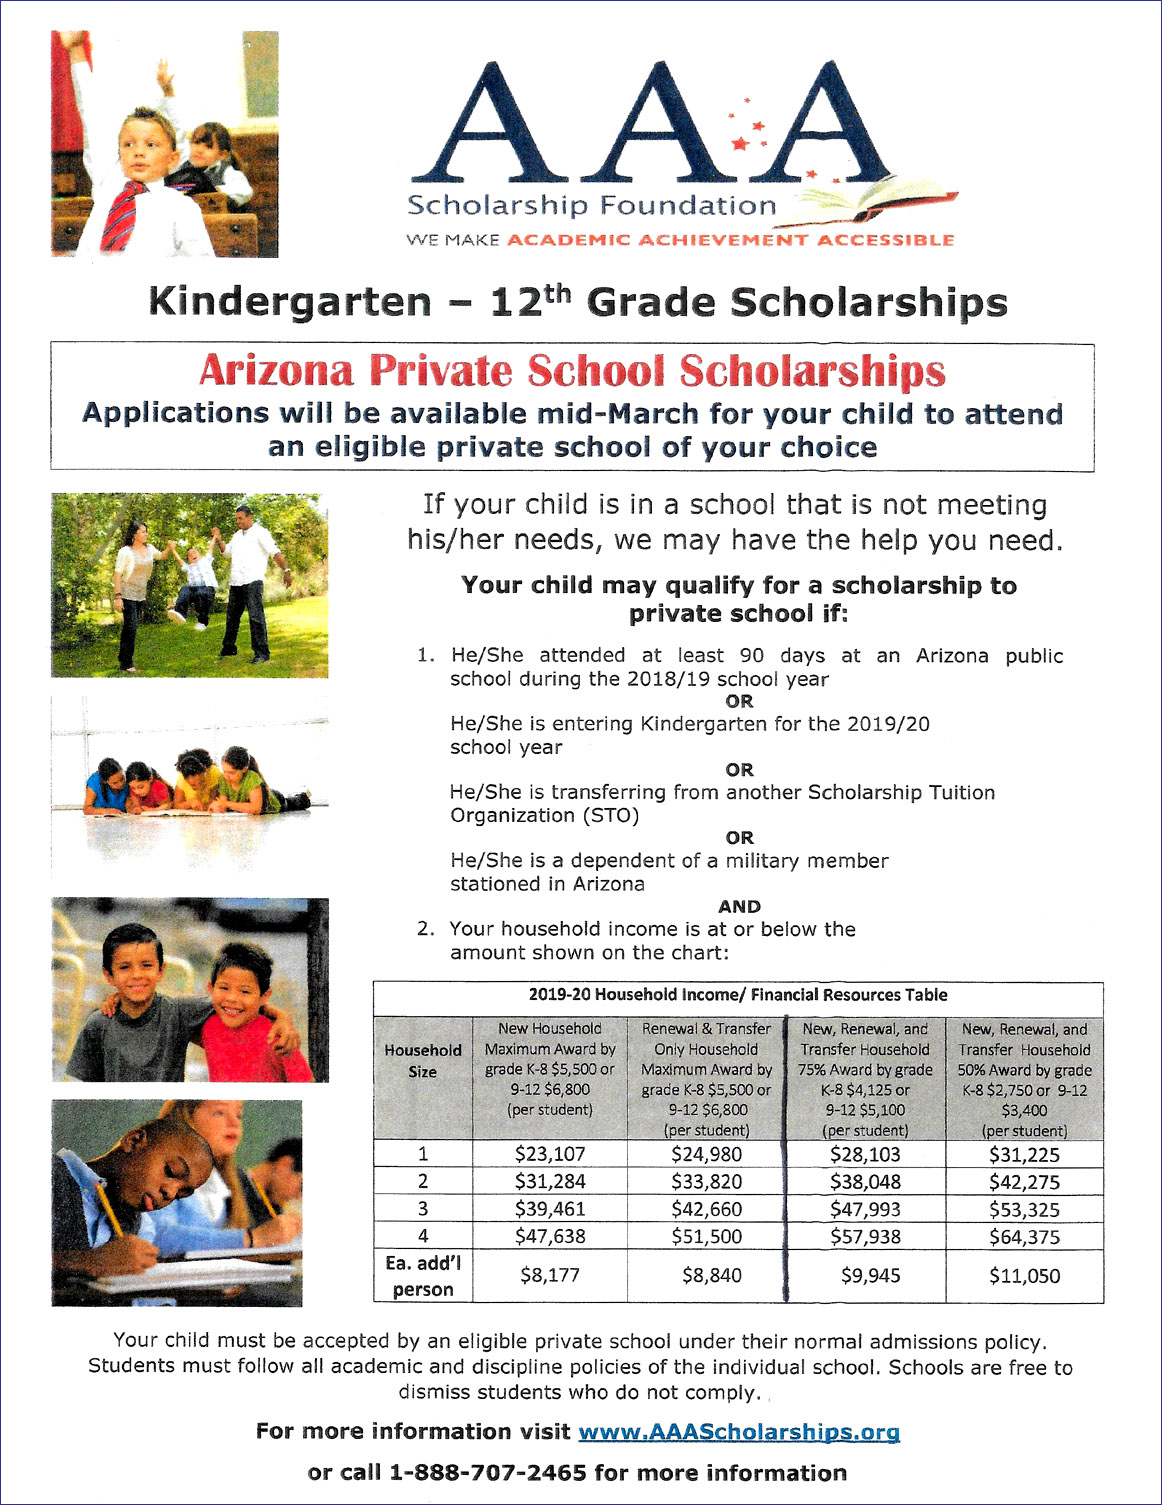 AAA-Scholarship-Flyer-Web-English.jpg